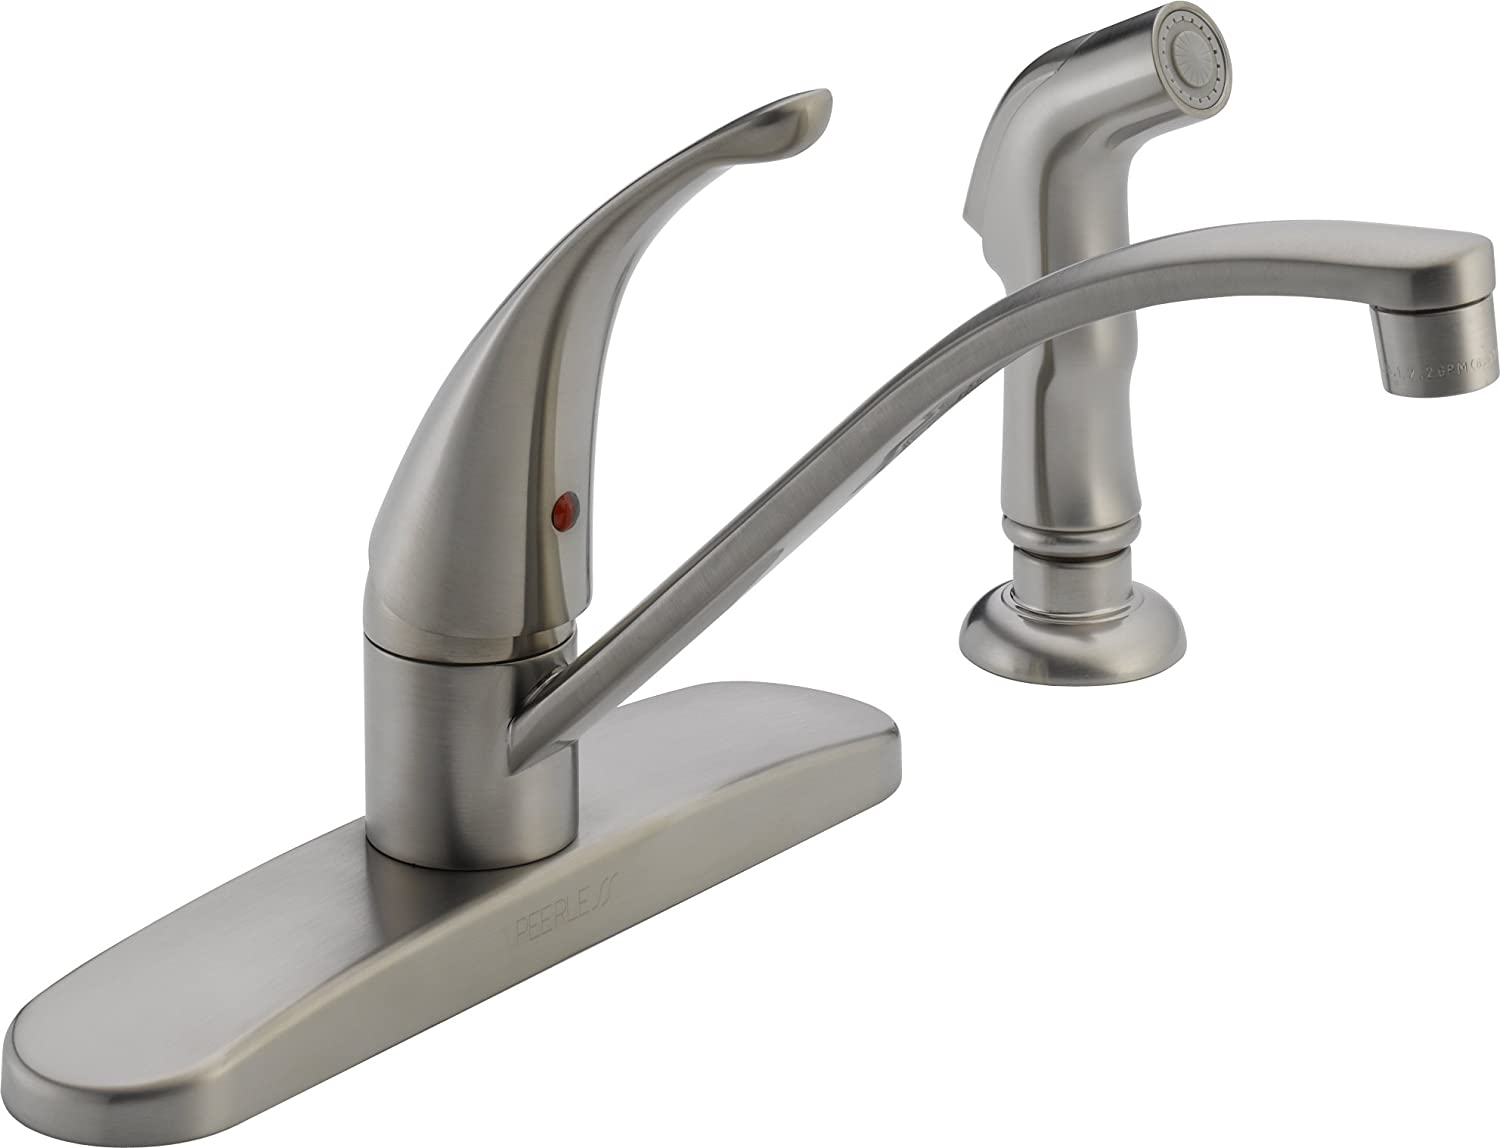 Peerless P188500LF-SS 1 Handle Side Spray Kitchen Faucet, Stainless ...